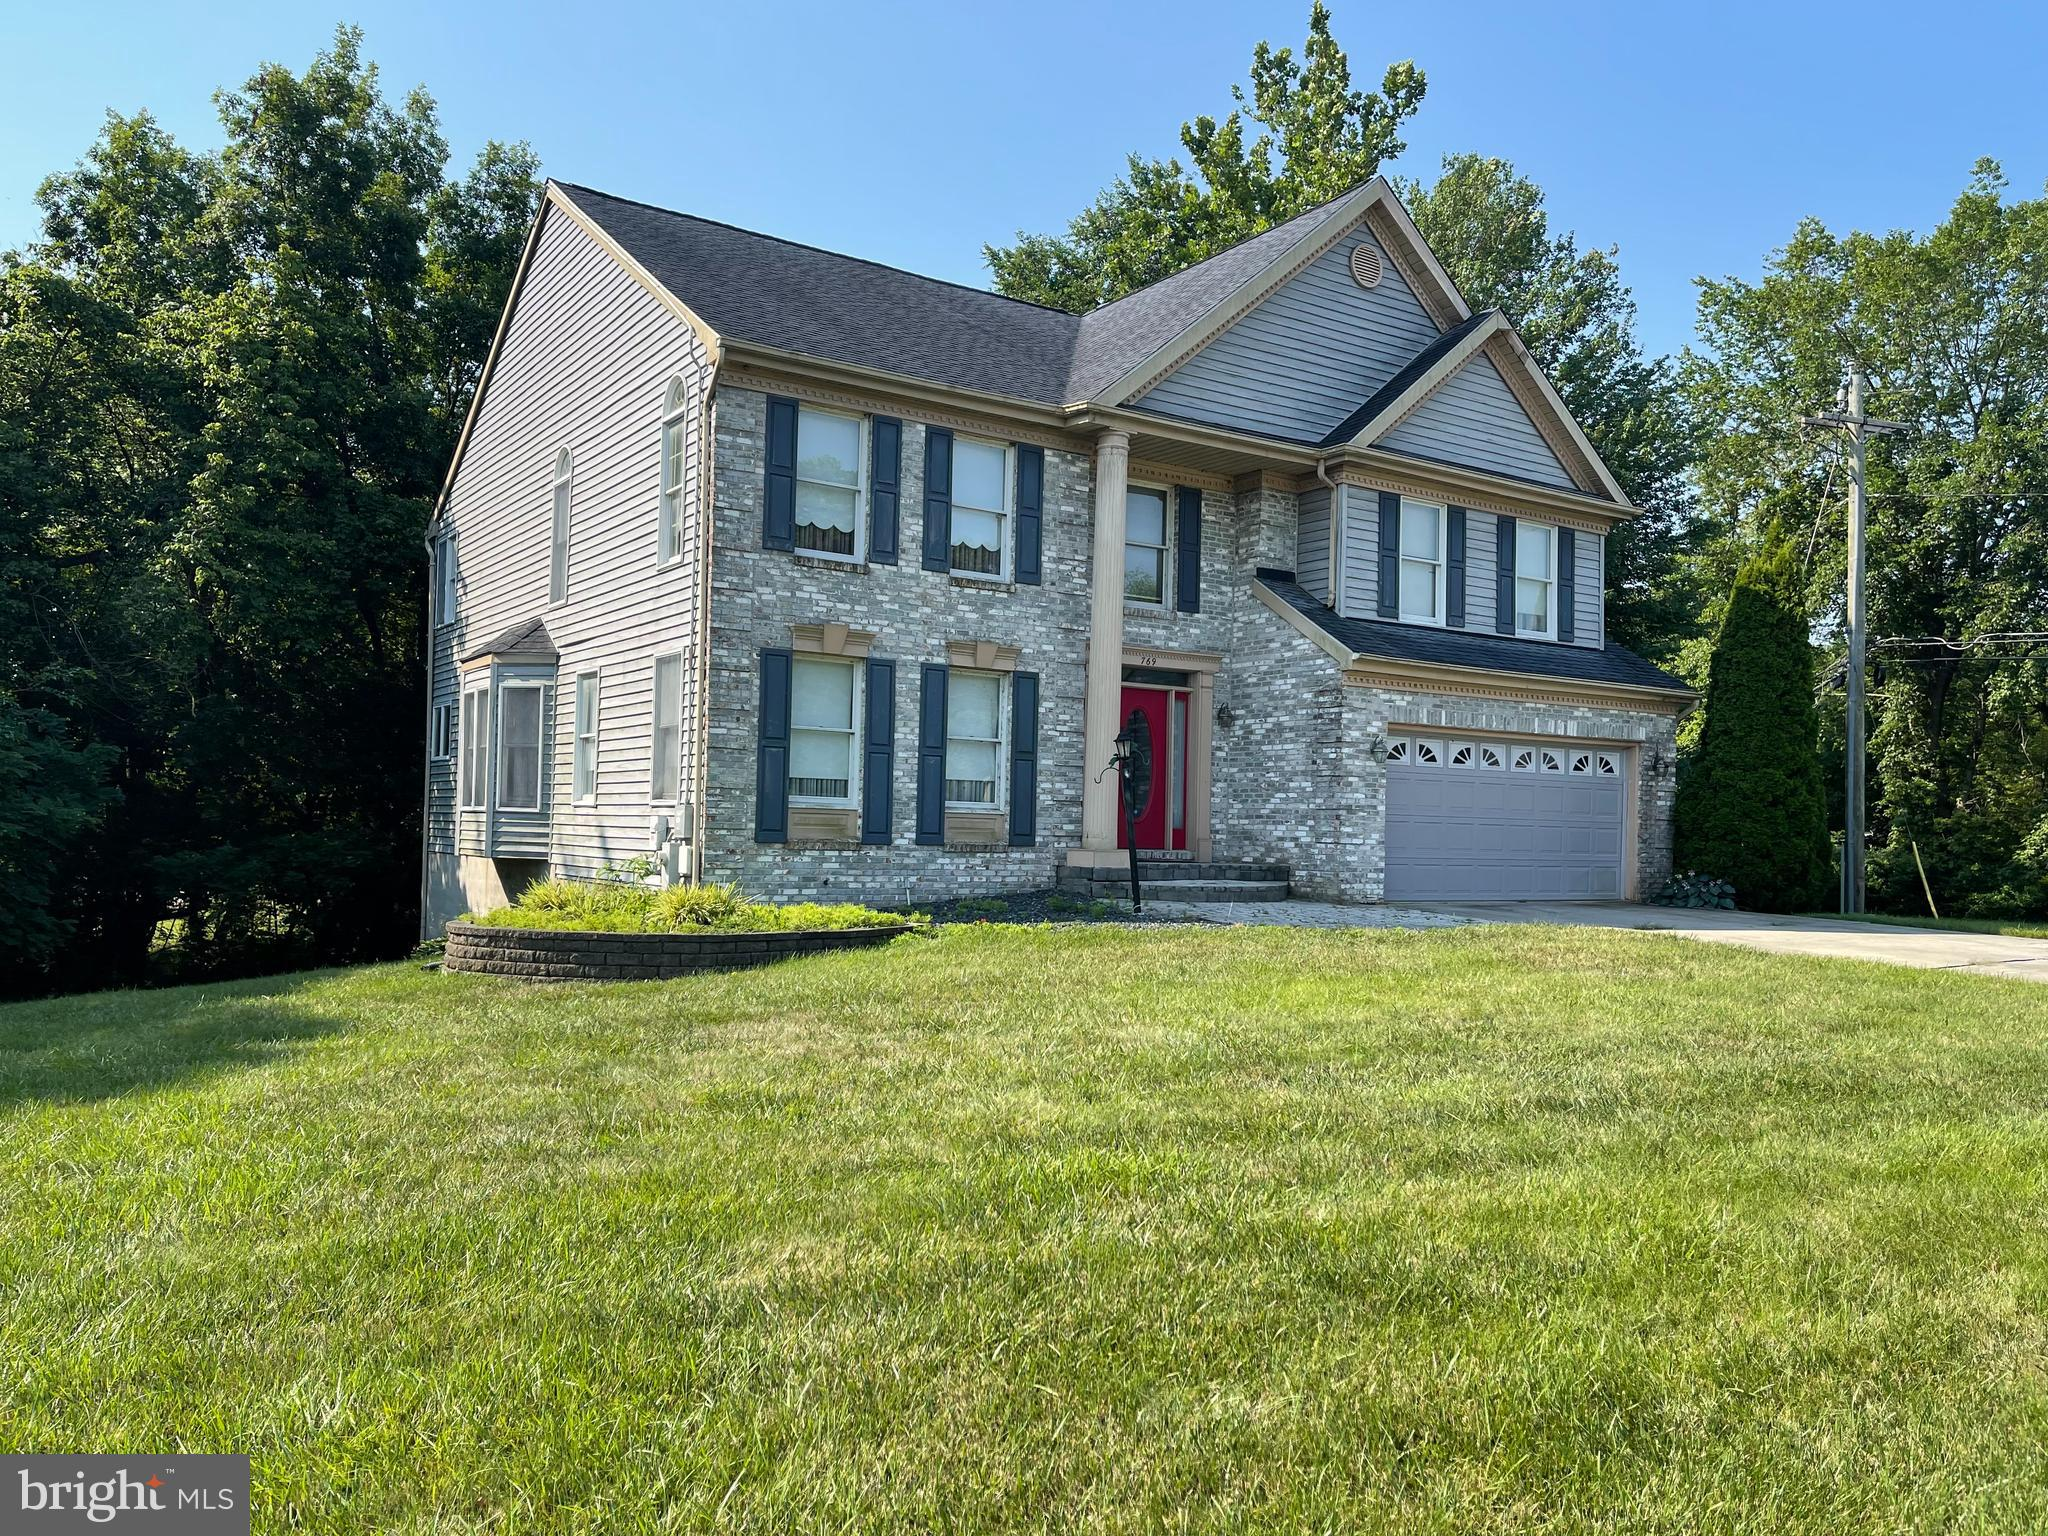 Spacious single family detached home offering over 3400sq of living space with four bedrooms, three